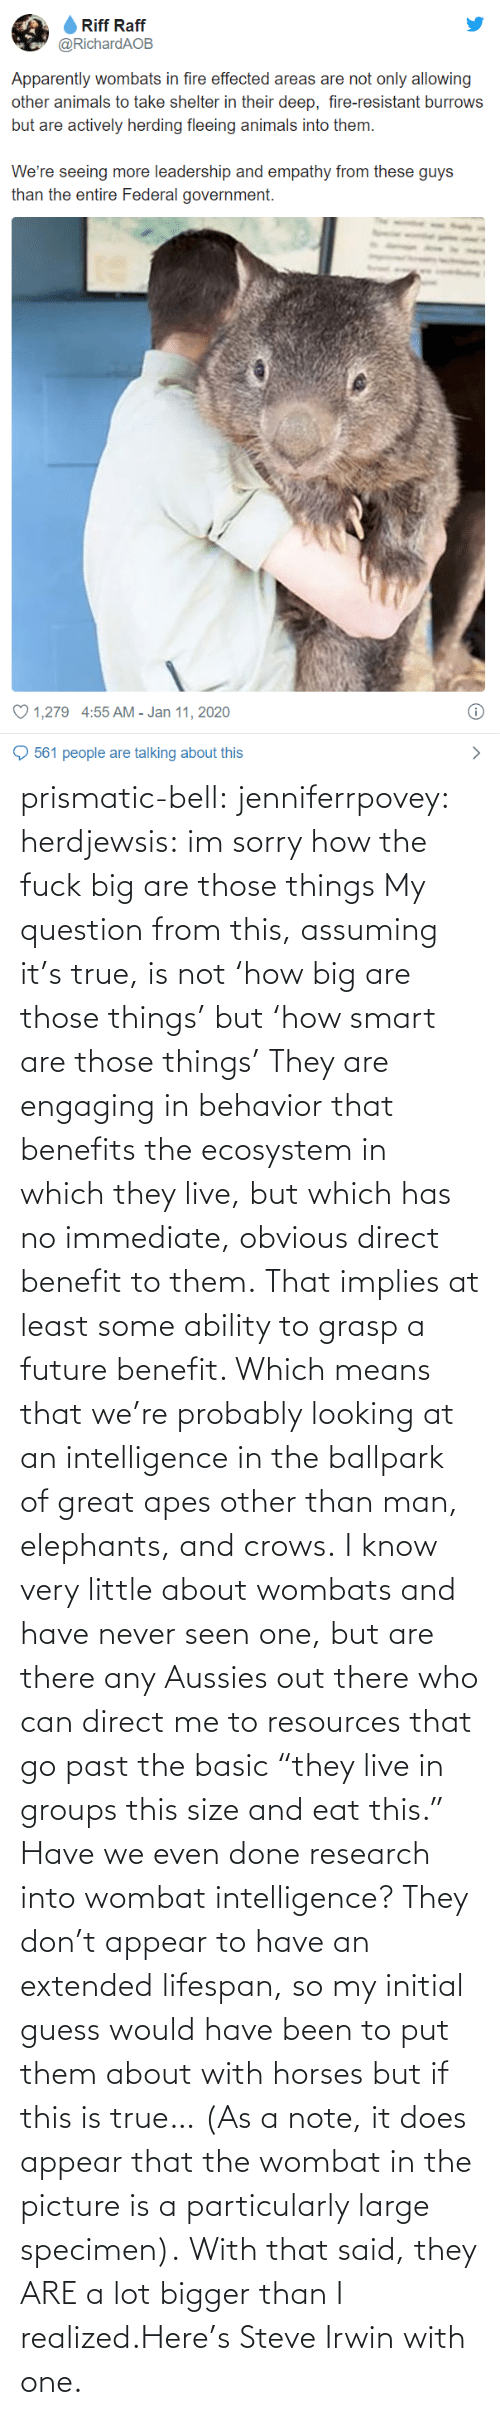 "basic: prismatic-bell:  jenniferrpovey: herdjewsis: im sorry how the fuck big are those things My question from this, assuming it's true, is not 'how big are those things' but 'how smart are those things' They are engaging in behavior that benefits the ecosystem in which they live, but which has no immediate, obvious direct benefit to them. That implies at least some ability to grasp a future benefit. Which means that we're probably looking at an intelligence in the ballpark of great apes other than man, elephants, and crows. I know very little about wombats and have never seen one, but are there any Aussies out there who can direct me to resources that go past the basic ""they live in groups this size and eat this."" Have we even done research into wombat intelligence? They don't appear to have an extended lifespan, so my initial guess would have been to put them about with horses but if this is true… (As a note, it does appear that the wombat in the picture is a particularly large specimen).  With that said, they ARE a lot bigger than I realized.Here's Steve Irwin with one."